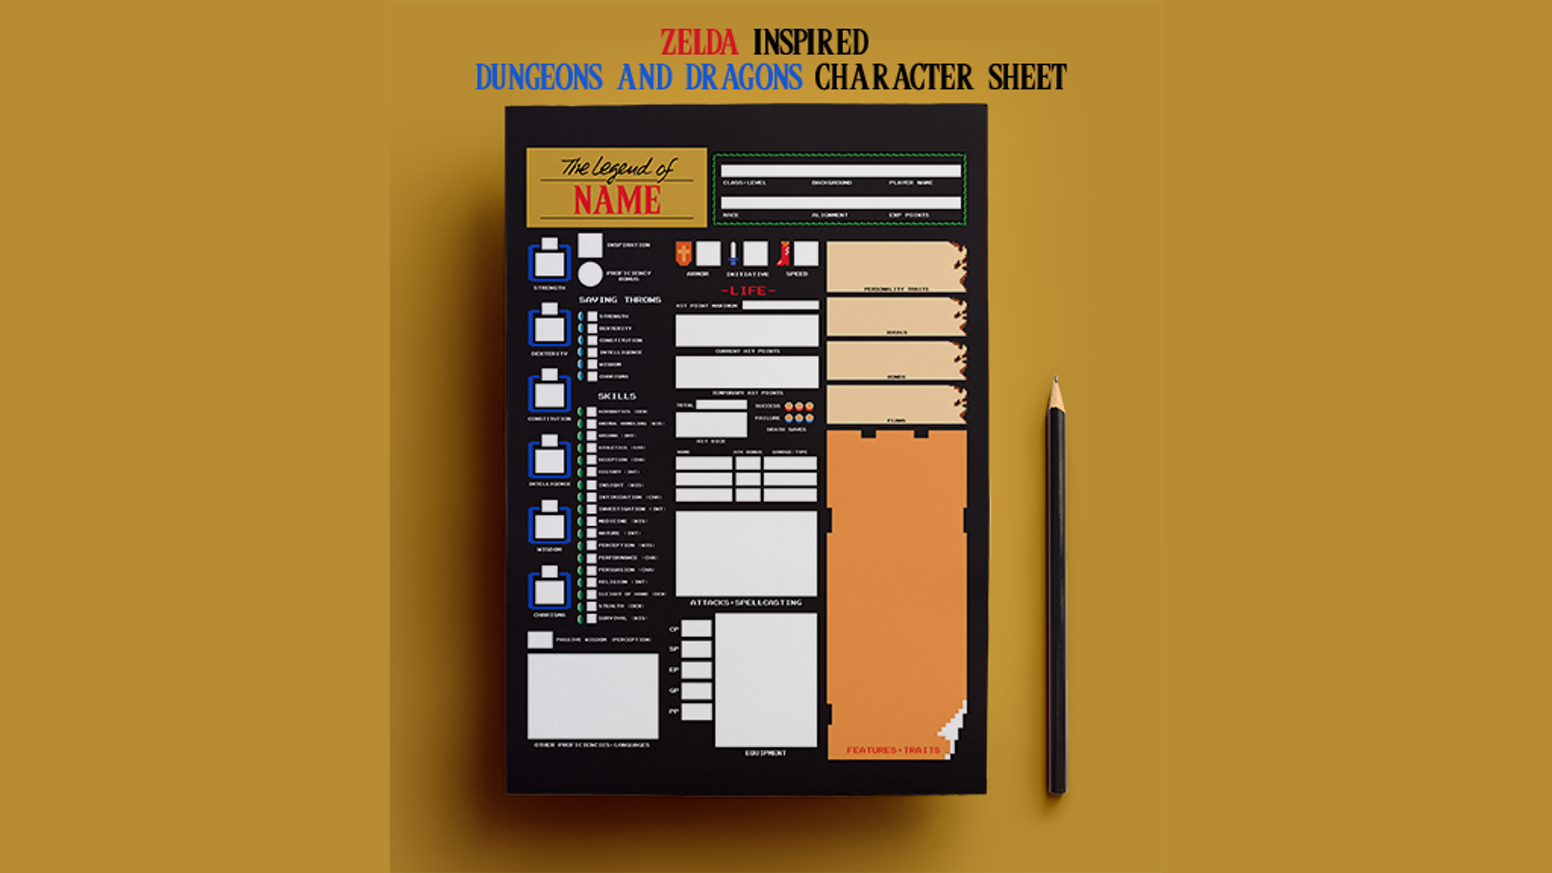 Zelda (NES) inspired Dungeons & Dragons Character Sheet by